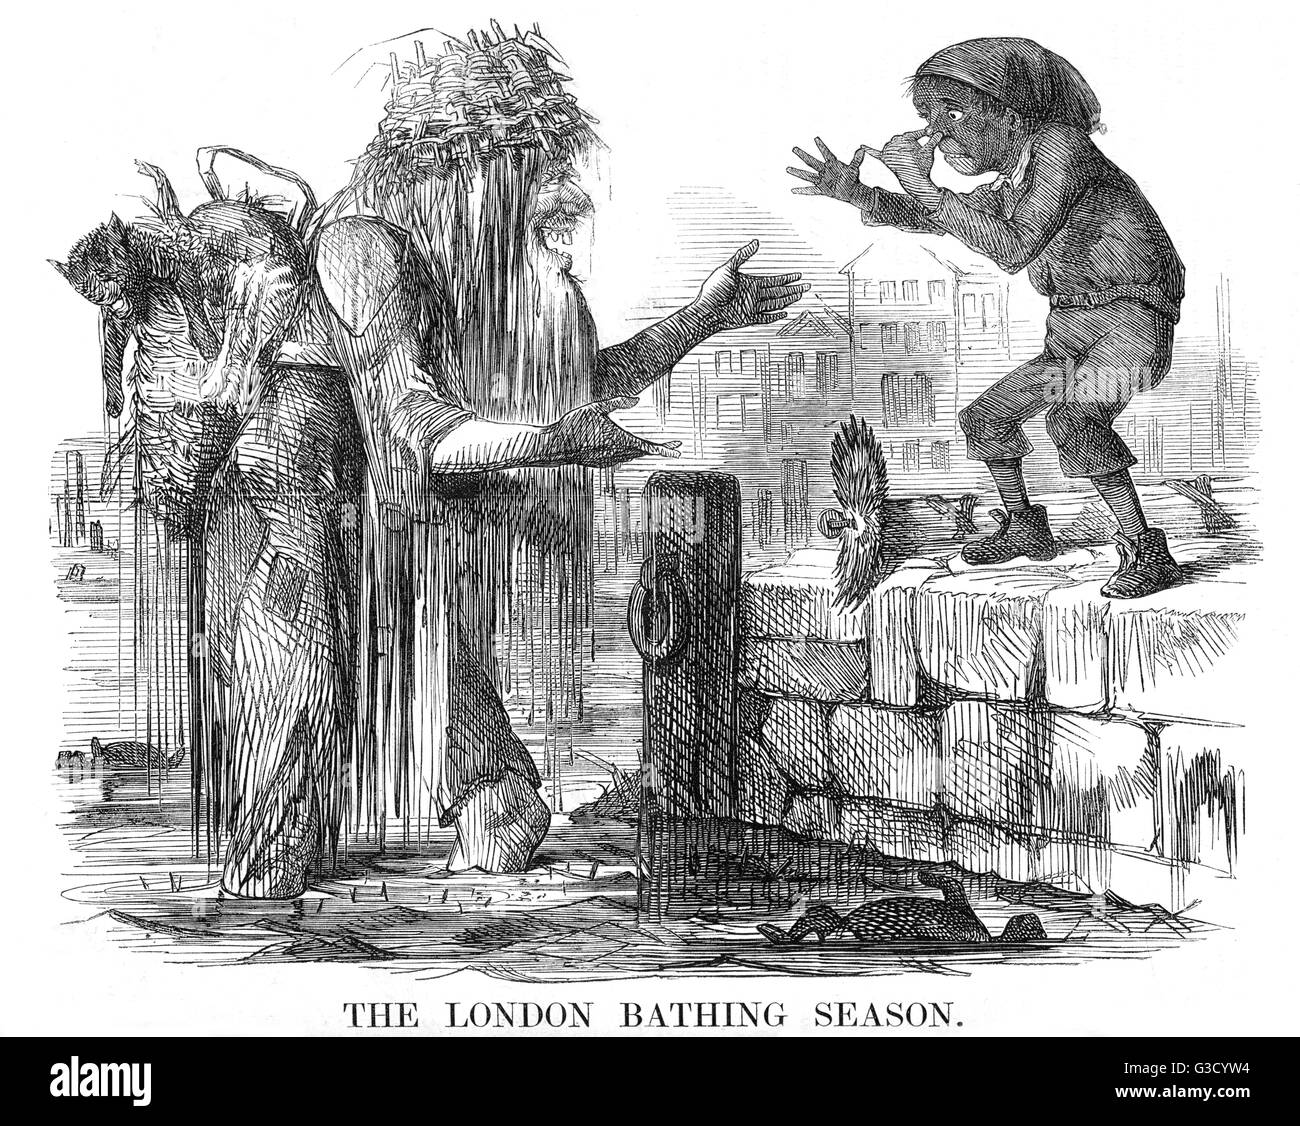 The London Bathing Season cartoon. The figure of Father Thames, filthy and carrying a dead cat, a bent kettle, and - Stock Image